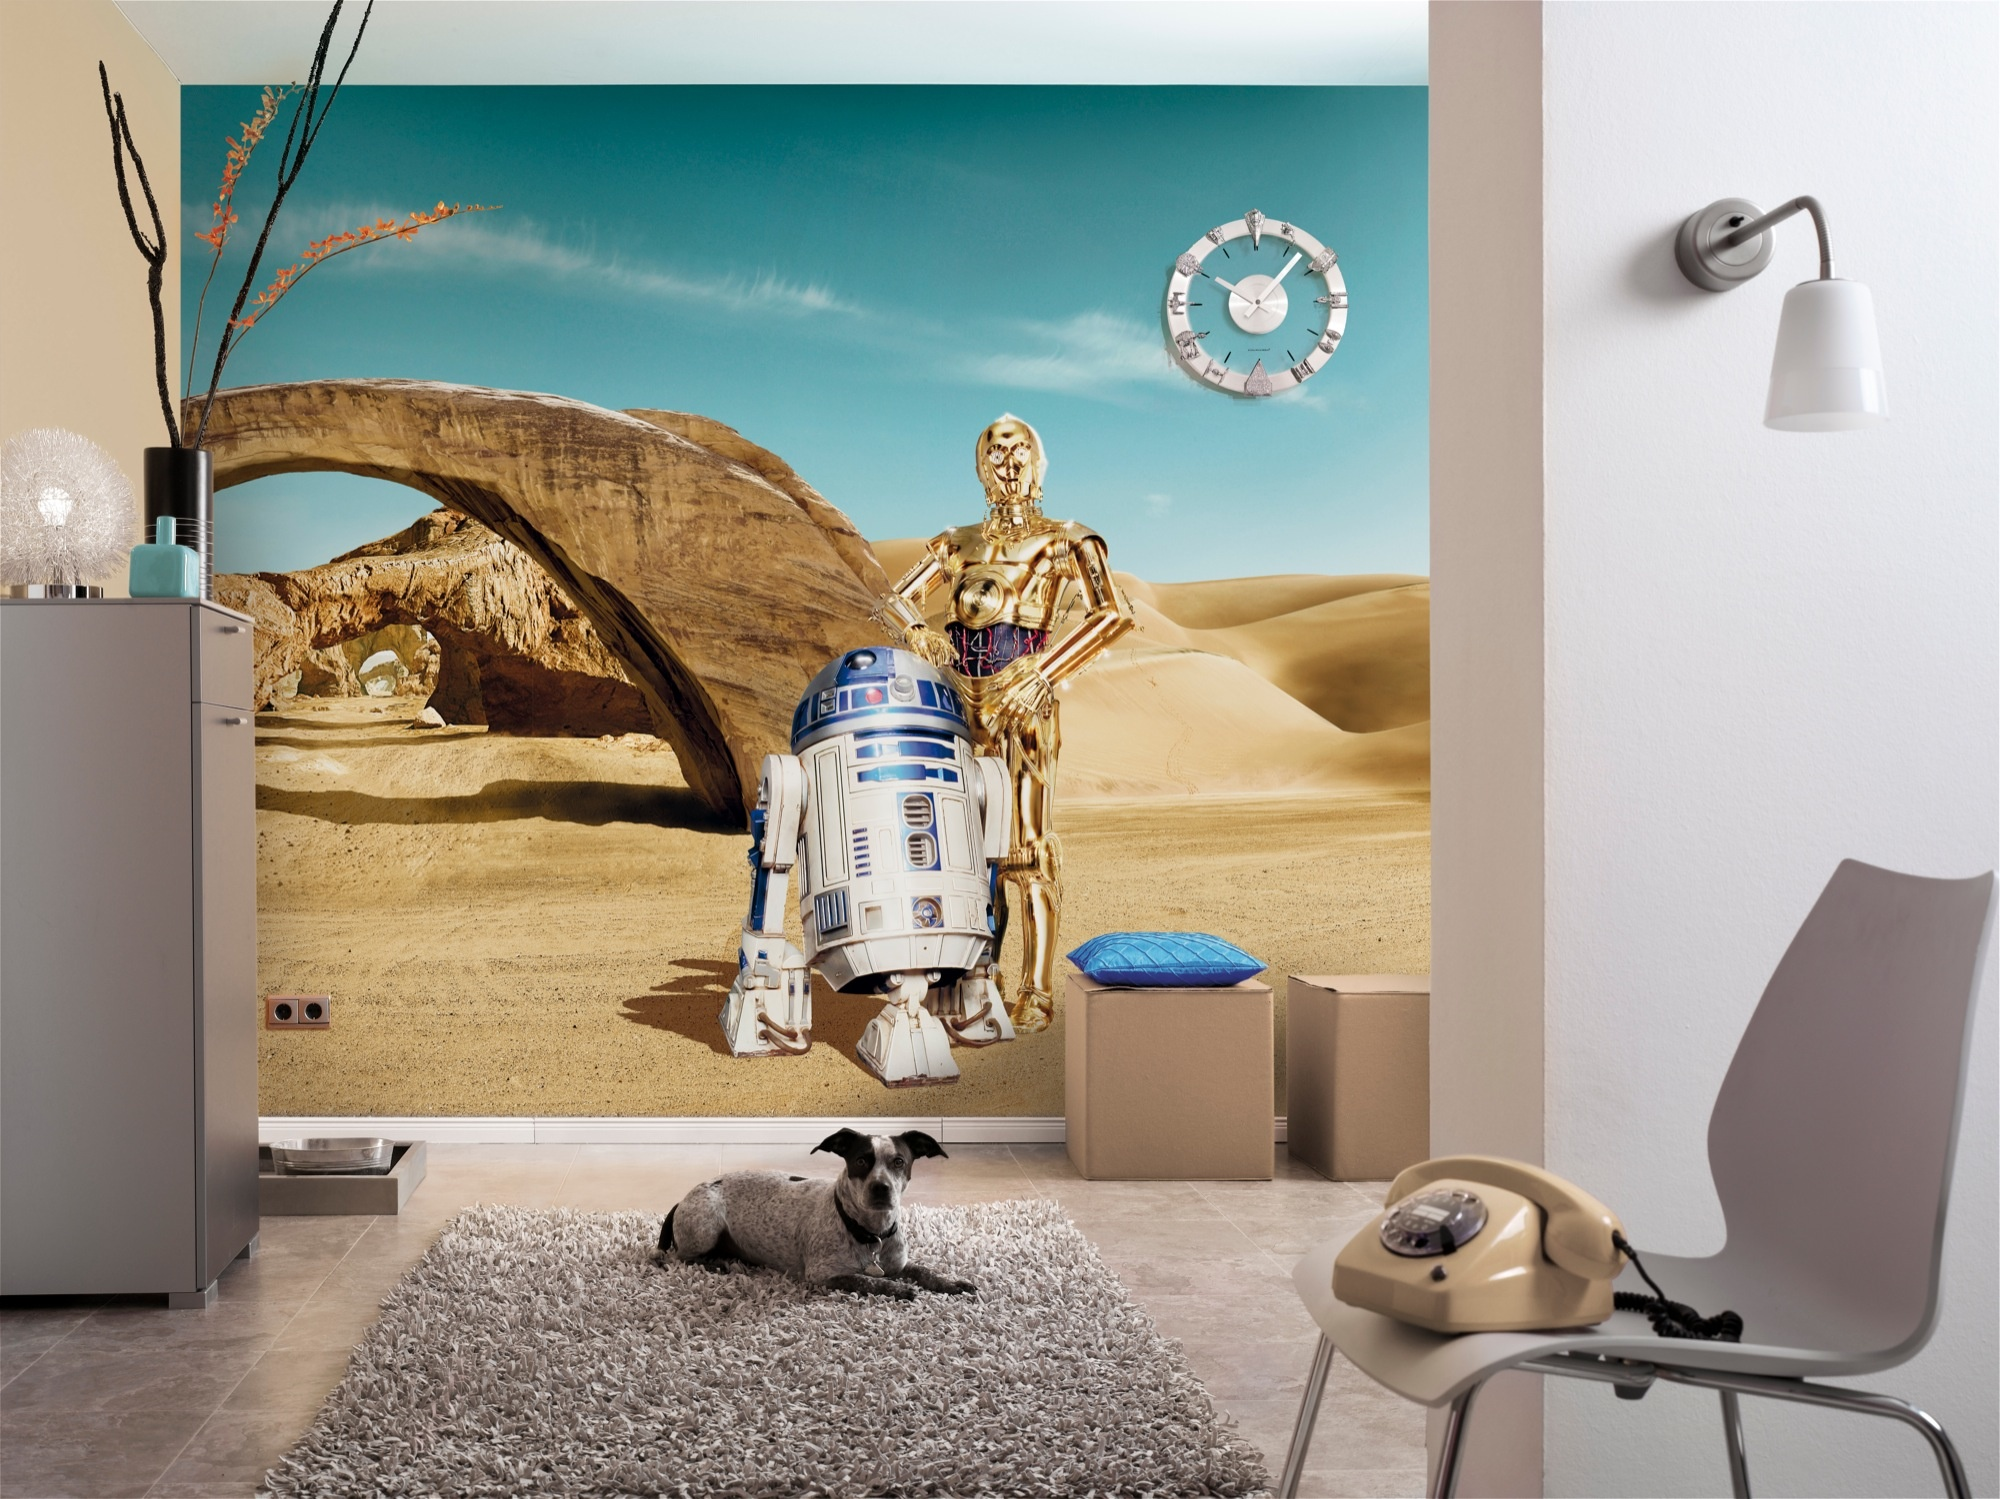 Disney Edition 4 Kinderbehang Komar - Kinderkamer behang  STAR WARS LOST DROIDS